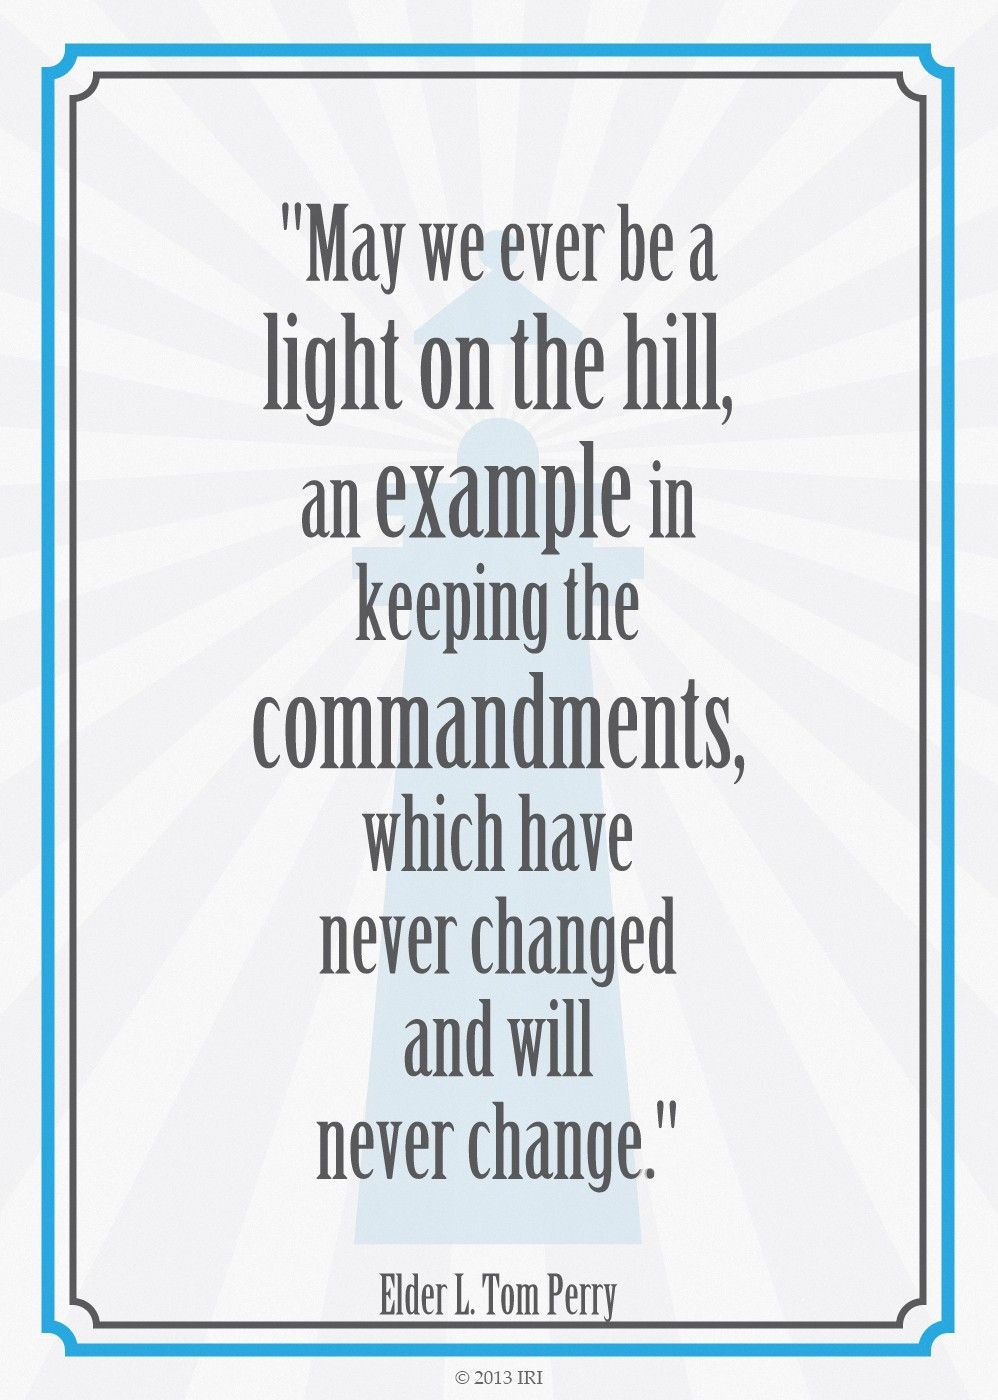 """""""May we ever be a light on the hill, an example in keeping the commandments, which have never changed and will never change.""""—Elder L. Tom Perry, """"Obedience to Law Is Liberty"""""""